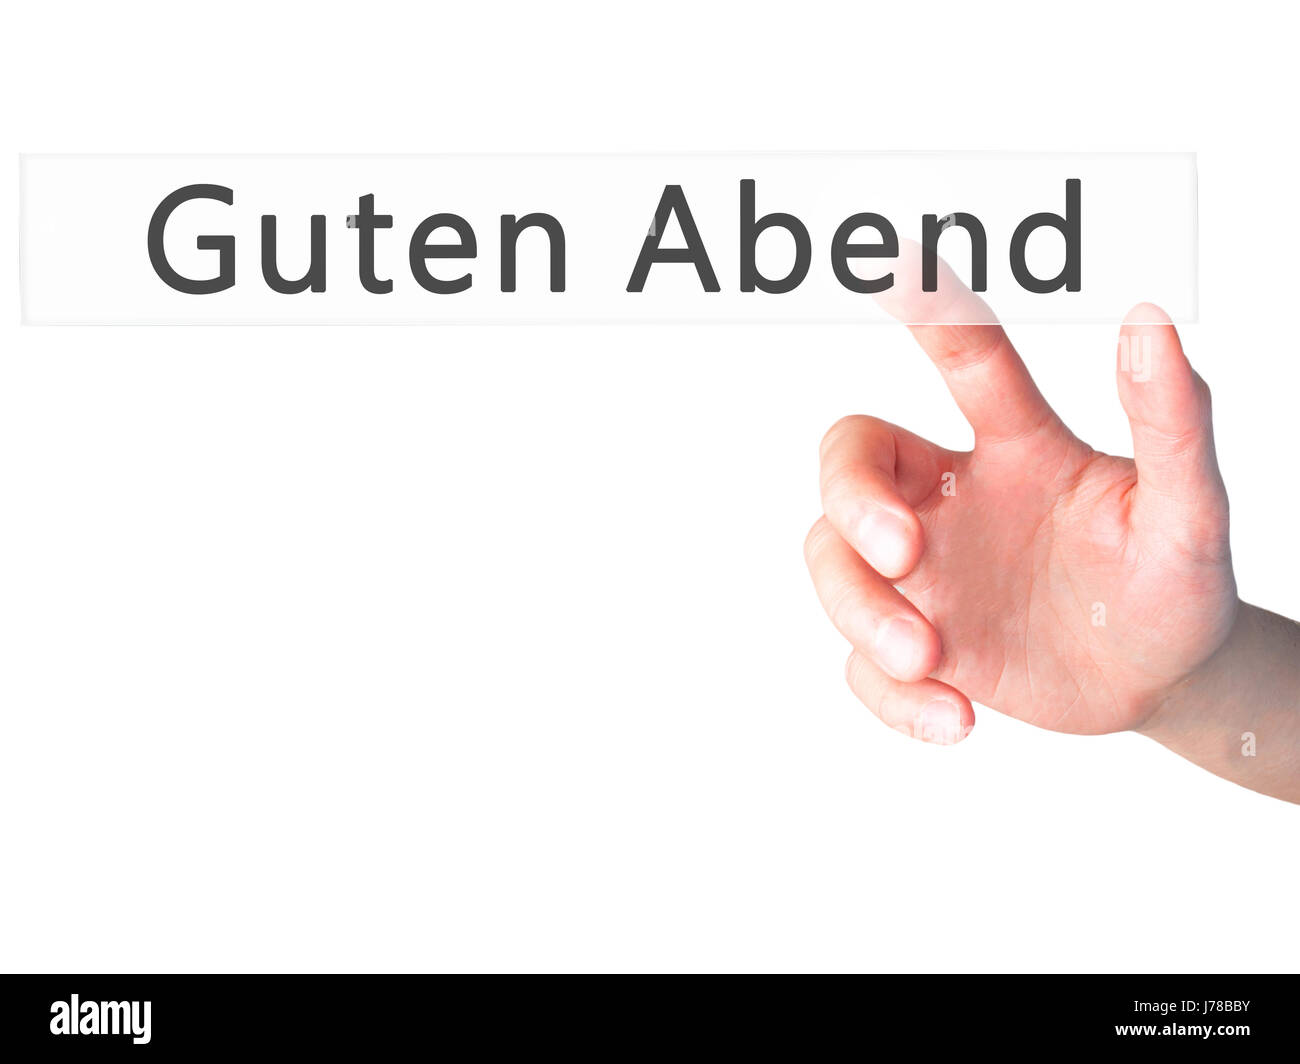 Guten Abend (Good Evening in German) - Hand pressing a button on blurred background concept . Business, technology, - Stock Image